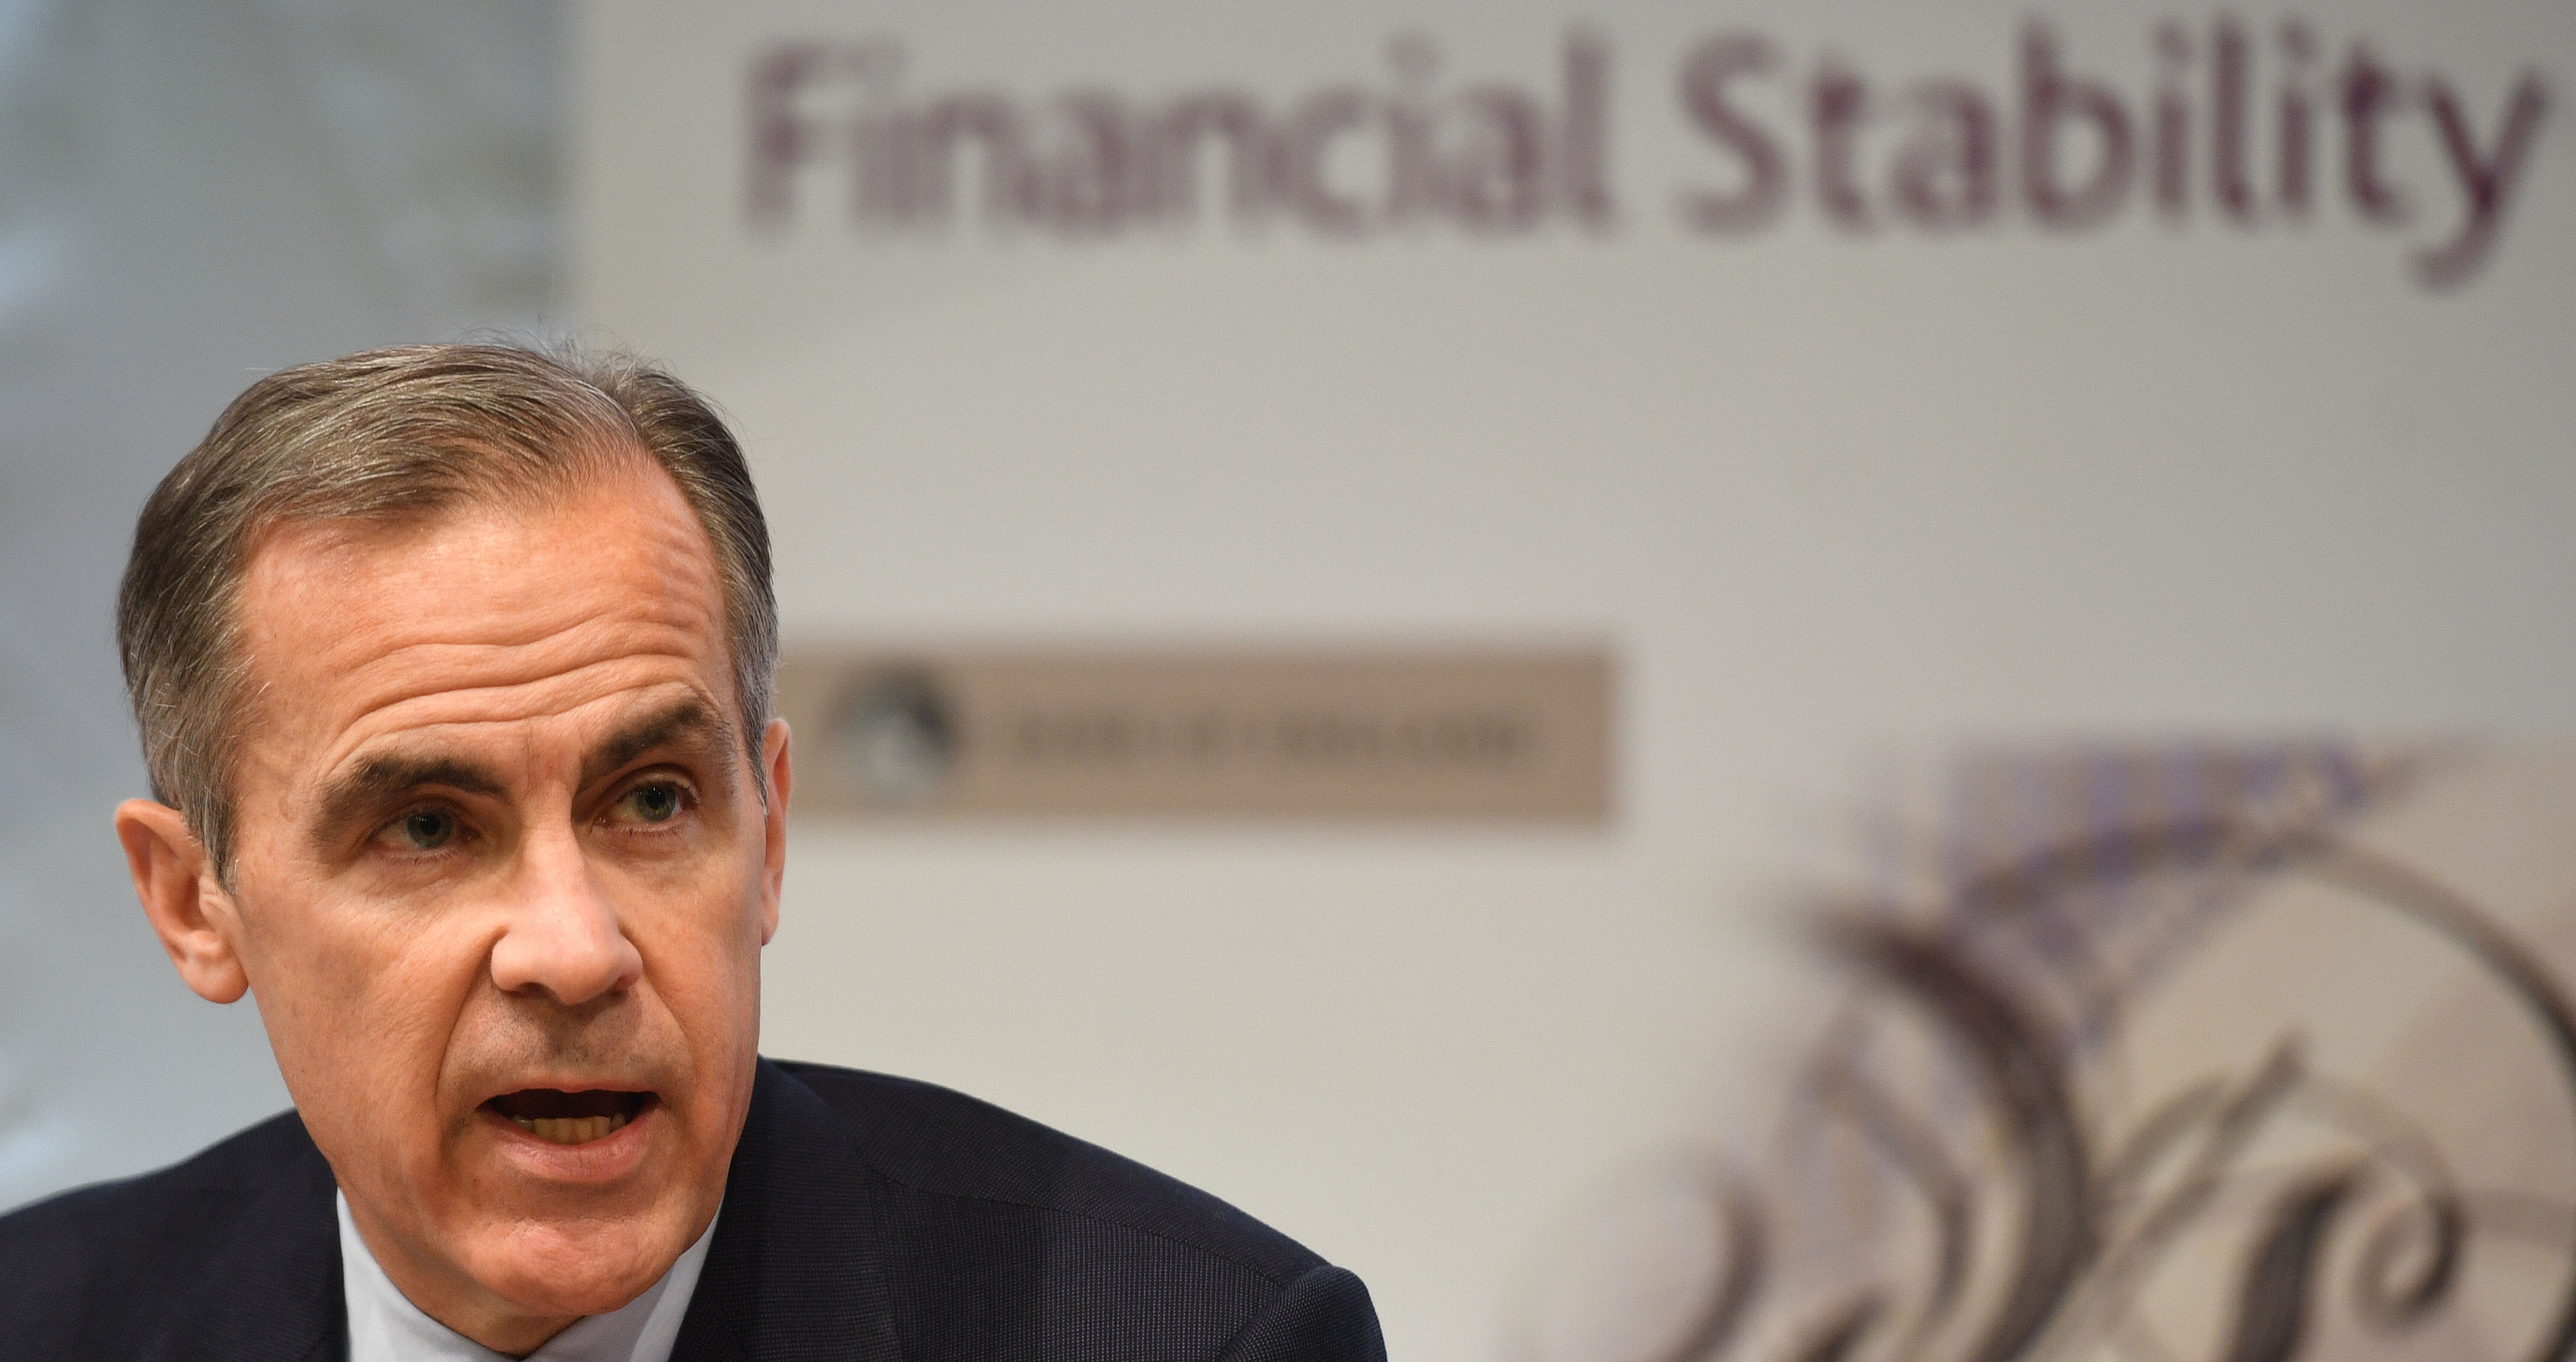 London Stock Exchange boss quits - a day after Carney intervention